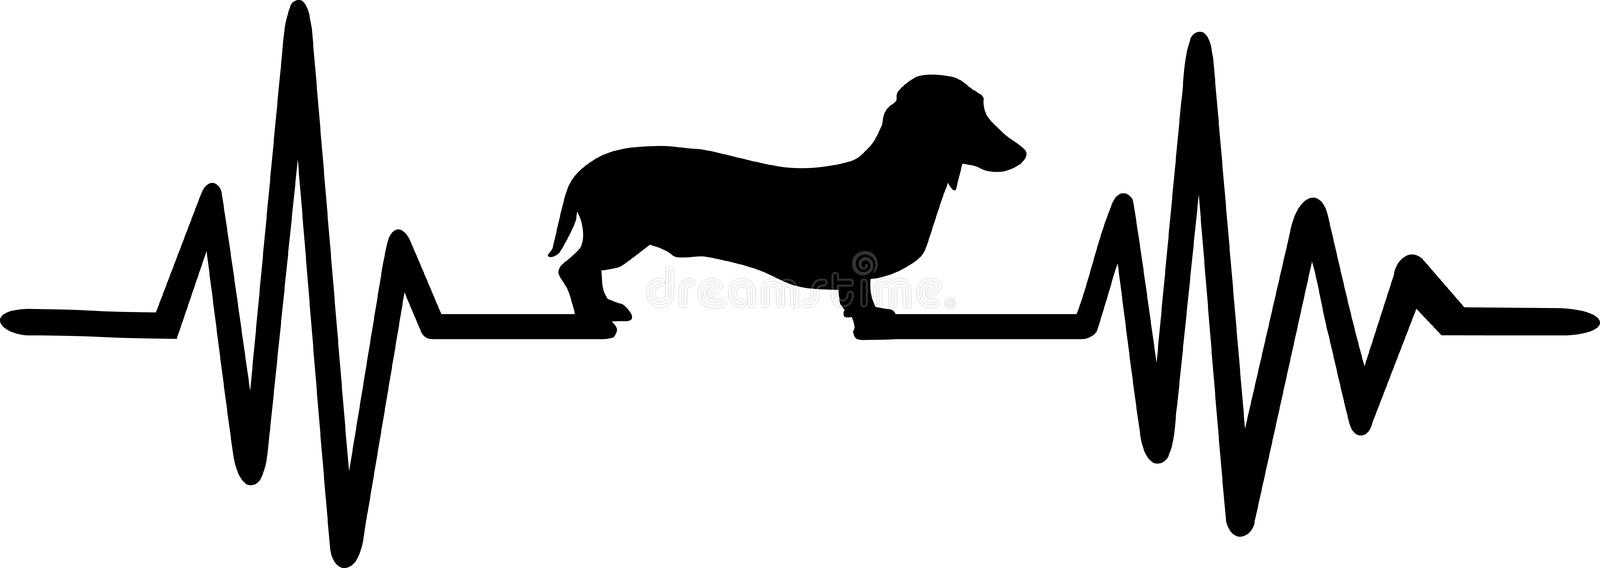 Dog heartbeat line with dachshund. Heartbeat pulse line dog with dachshund silhouette black royalty free illustration